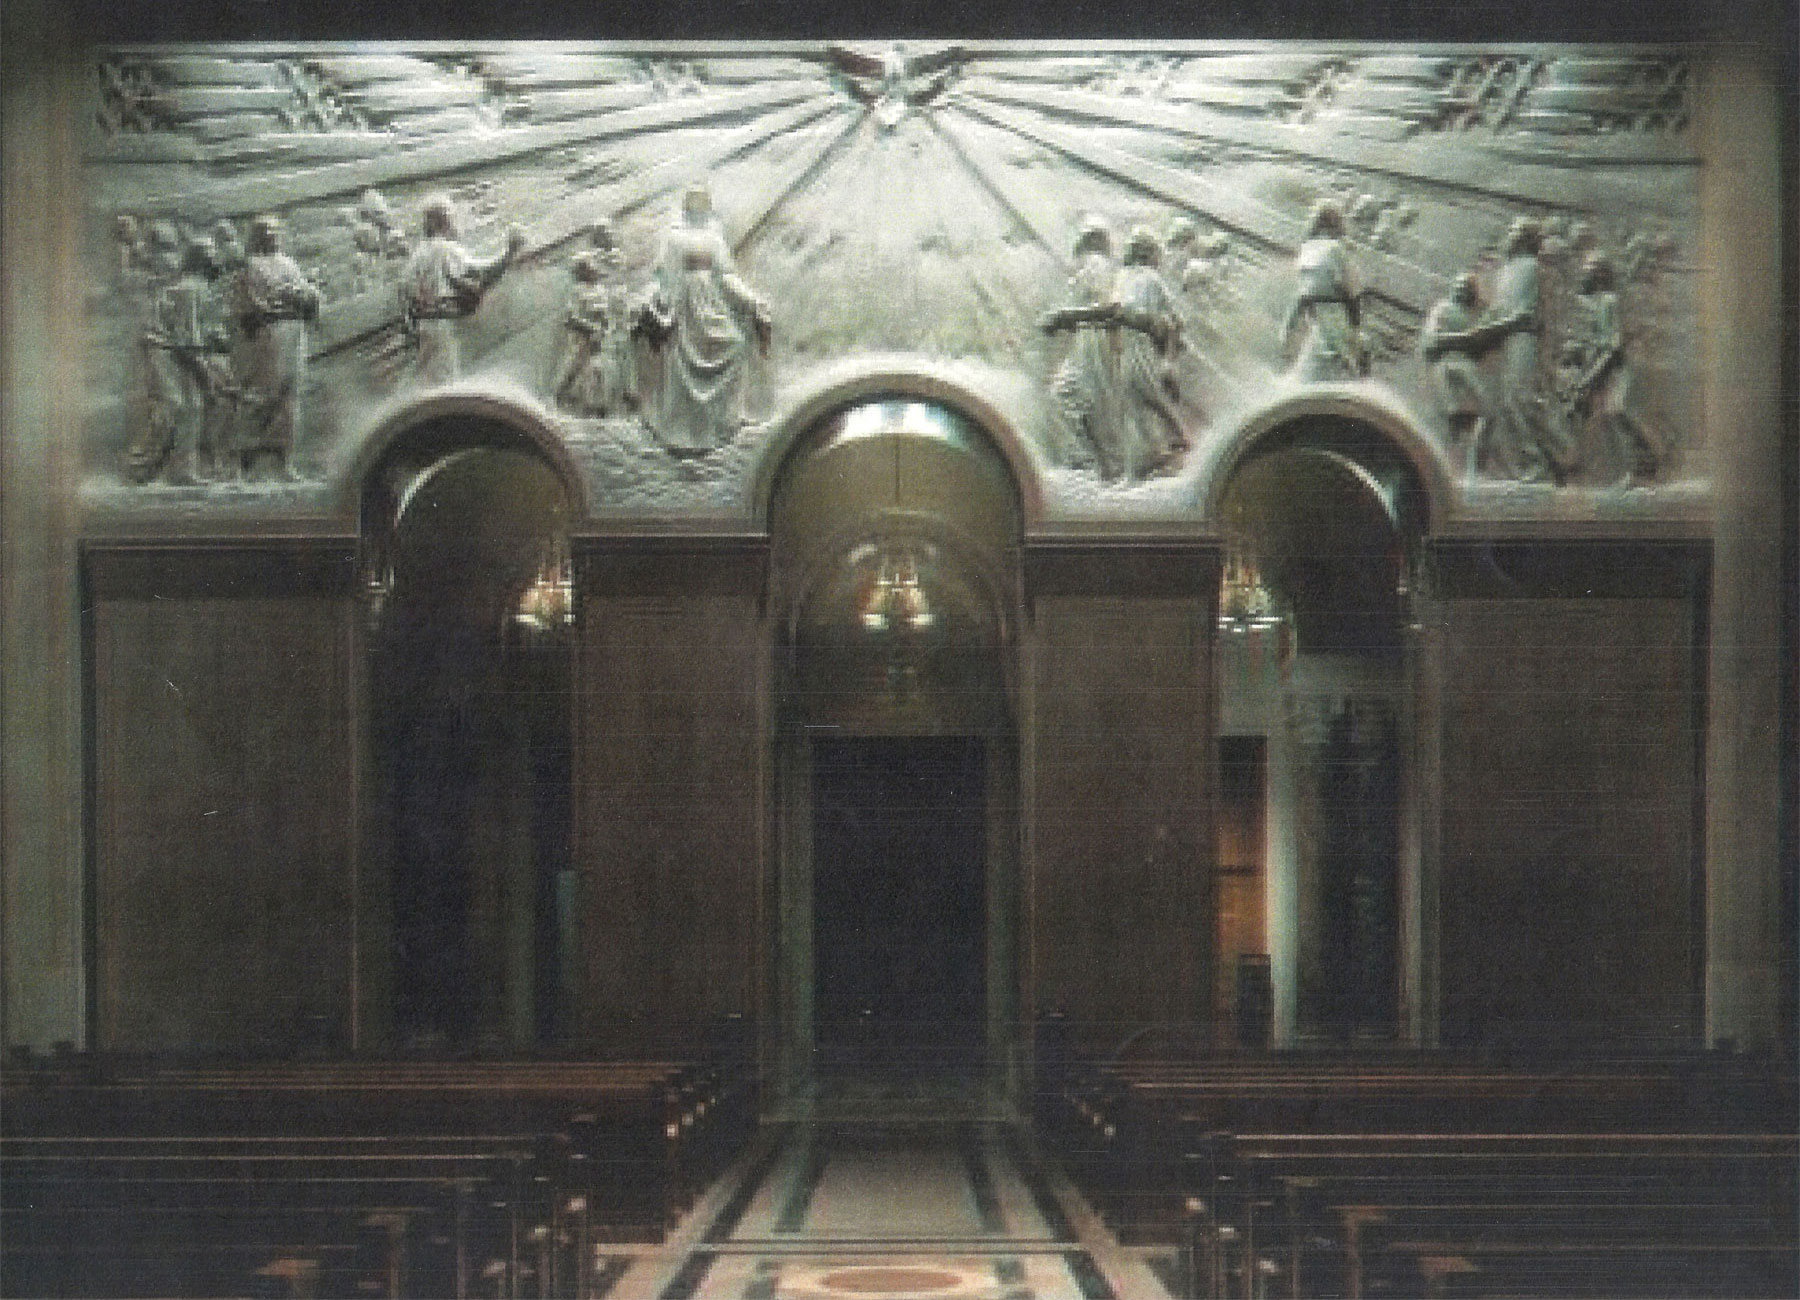 Bas relief installin in a church in the USA.